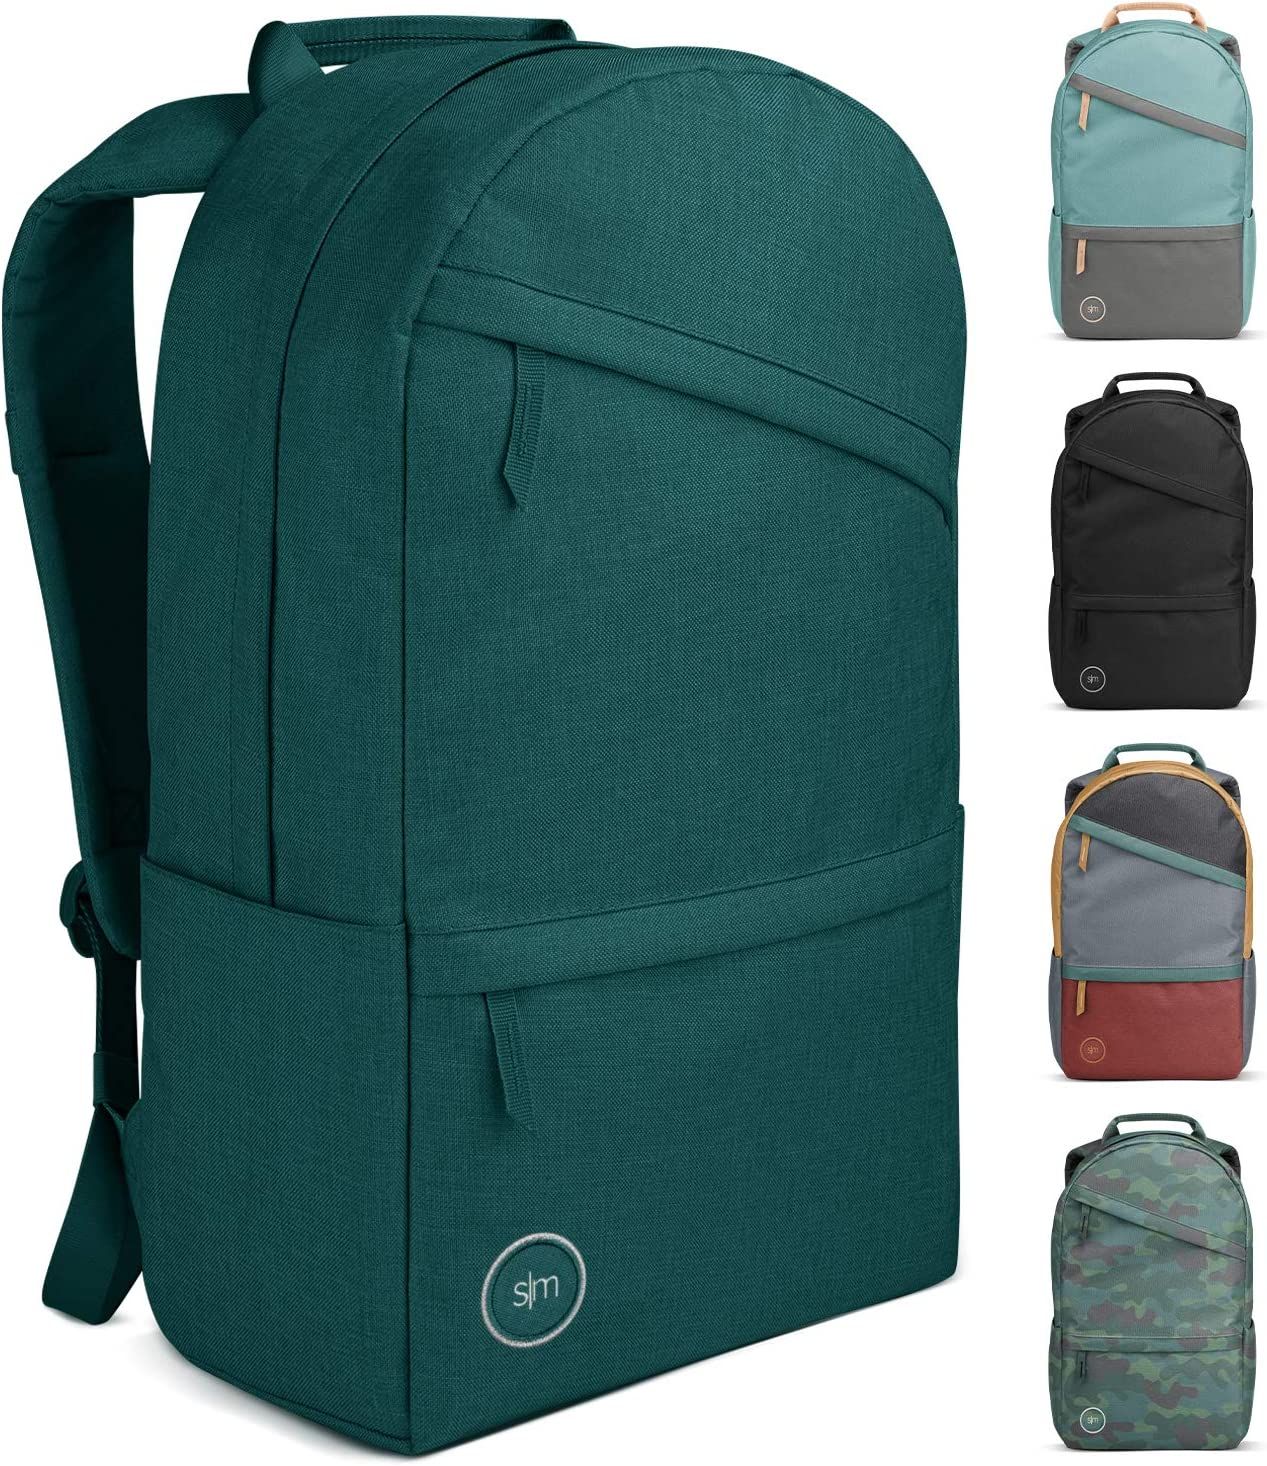 Simple Modern Legacy Backpack with Laptop Compartment Sleeve - 25L Travel Bag for Men & Women College Work School -Riptide